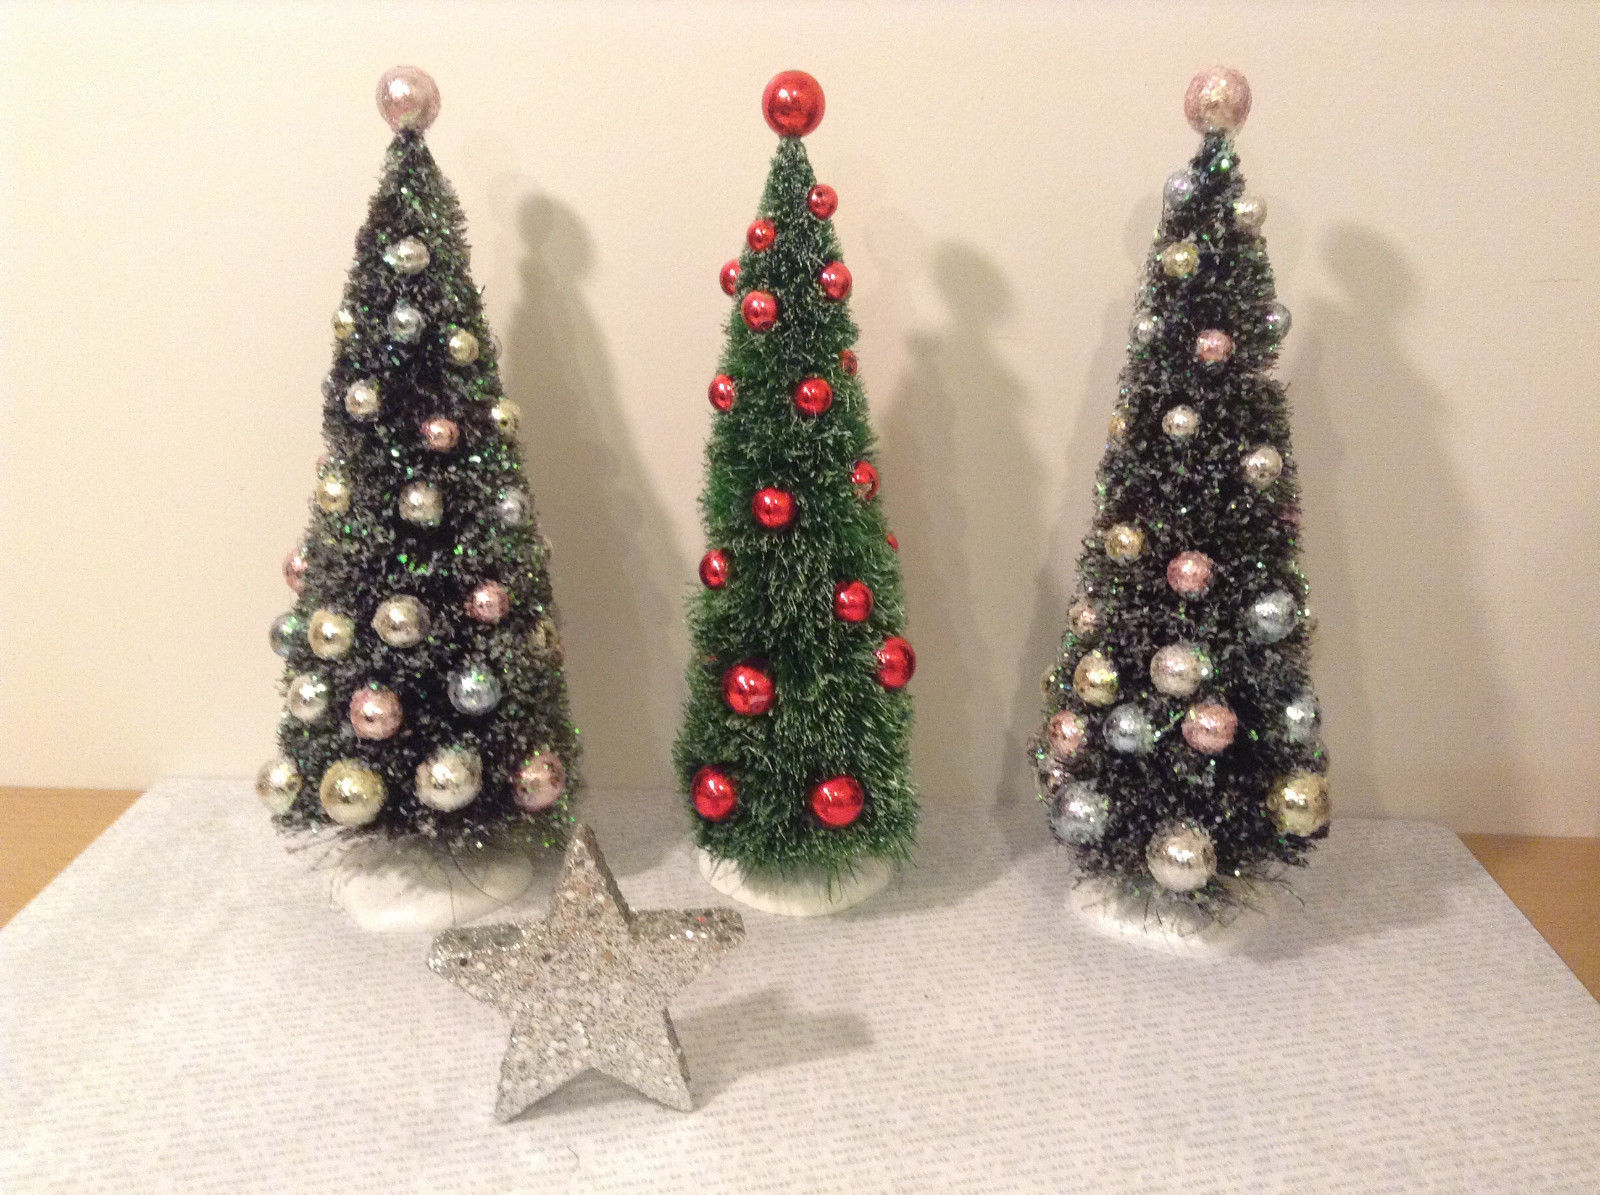 Decorative Christmas Trees Set of 3 Star Department 56